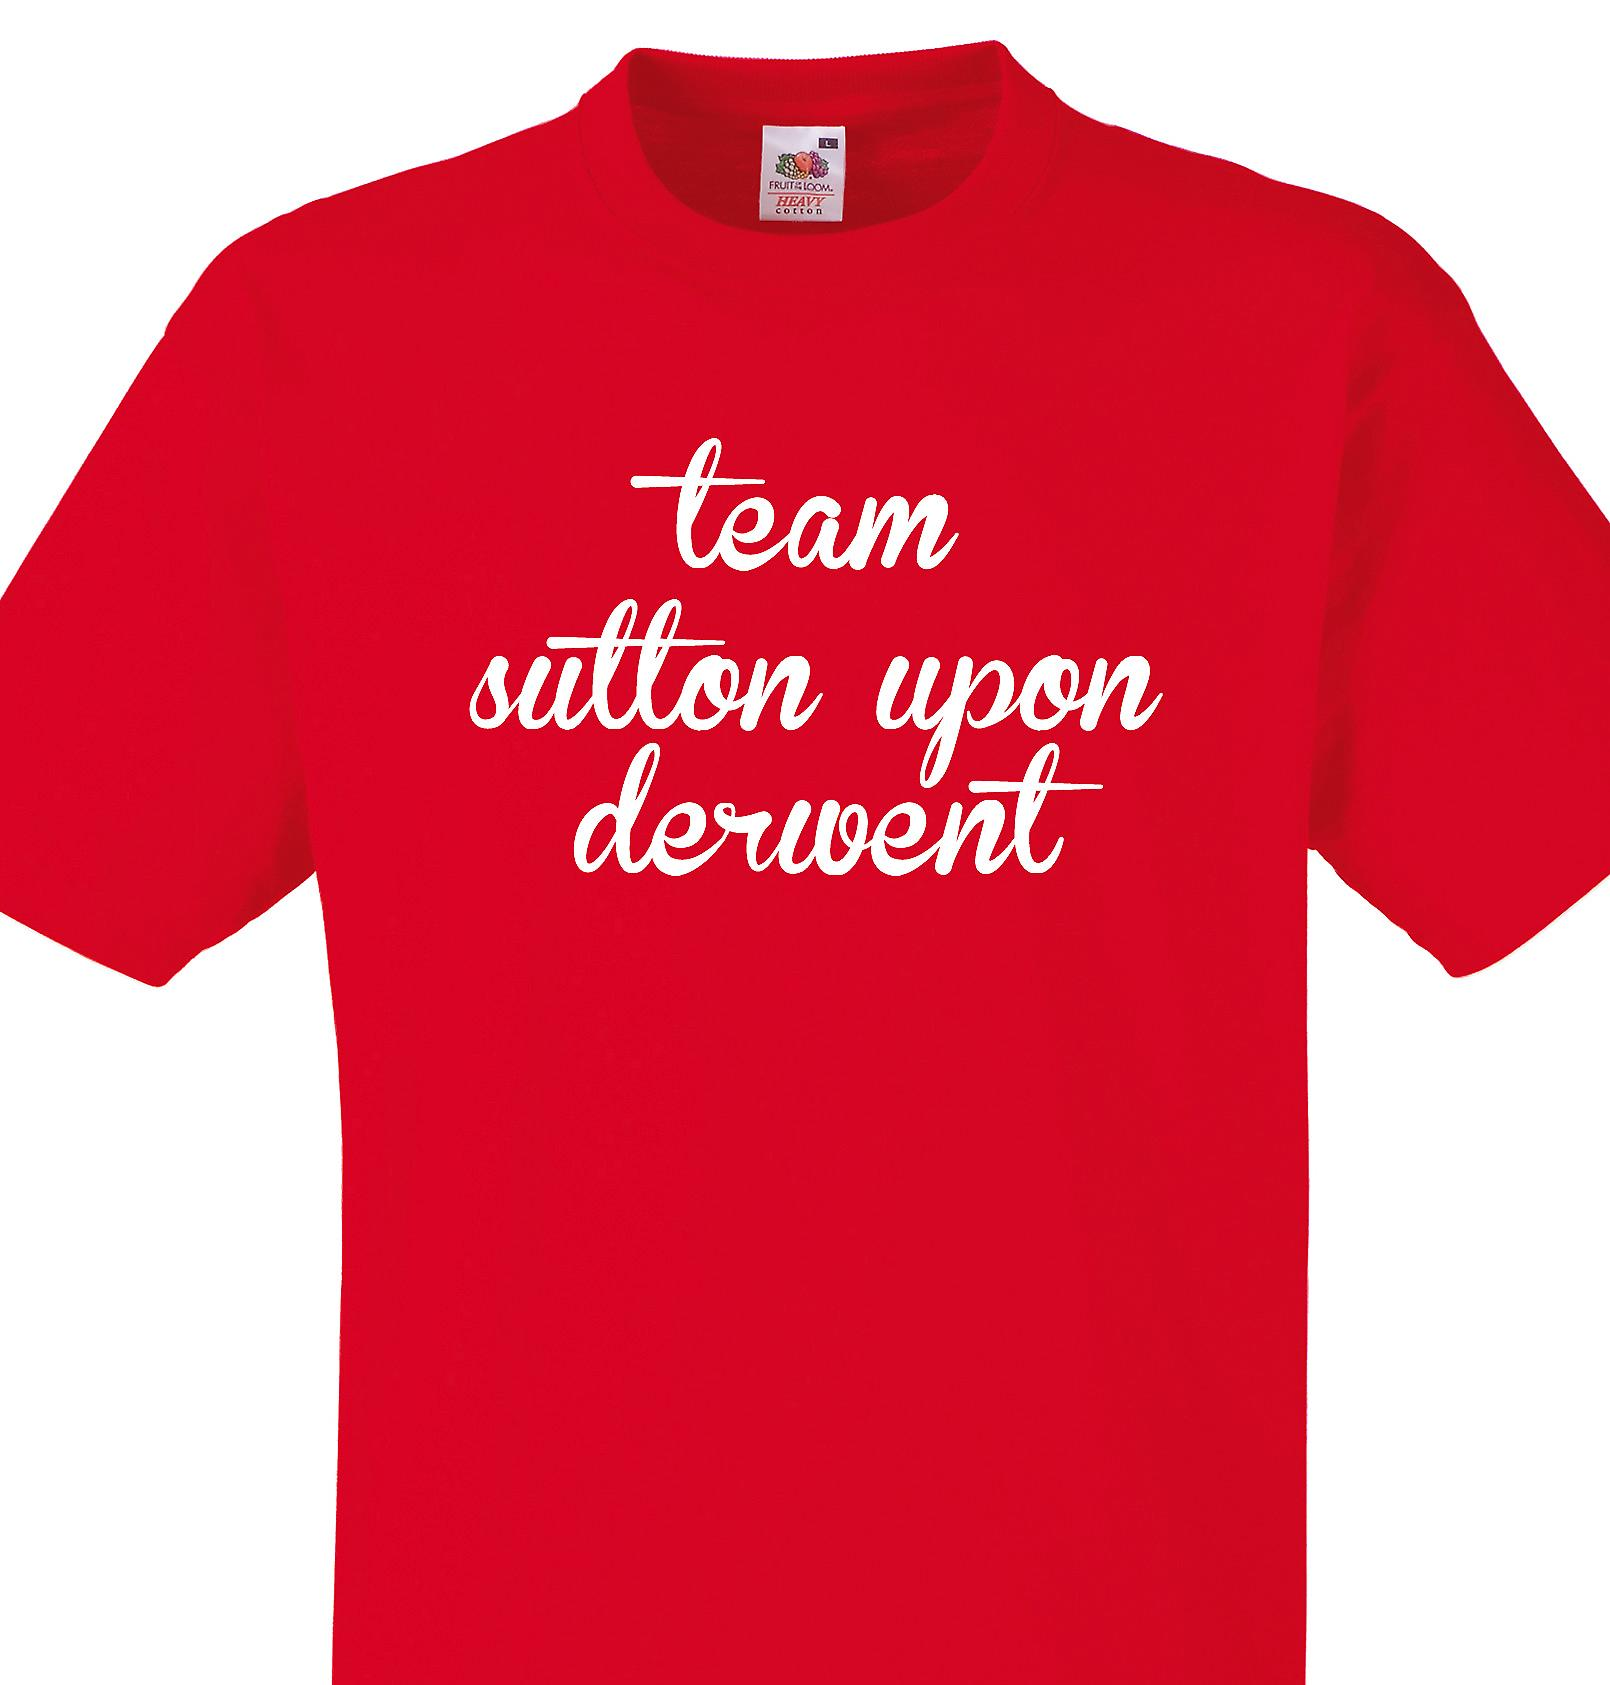 Team Sutton upon derwent Red T shirt